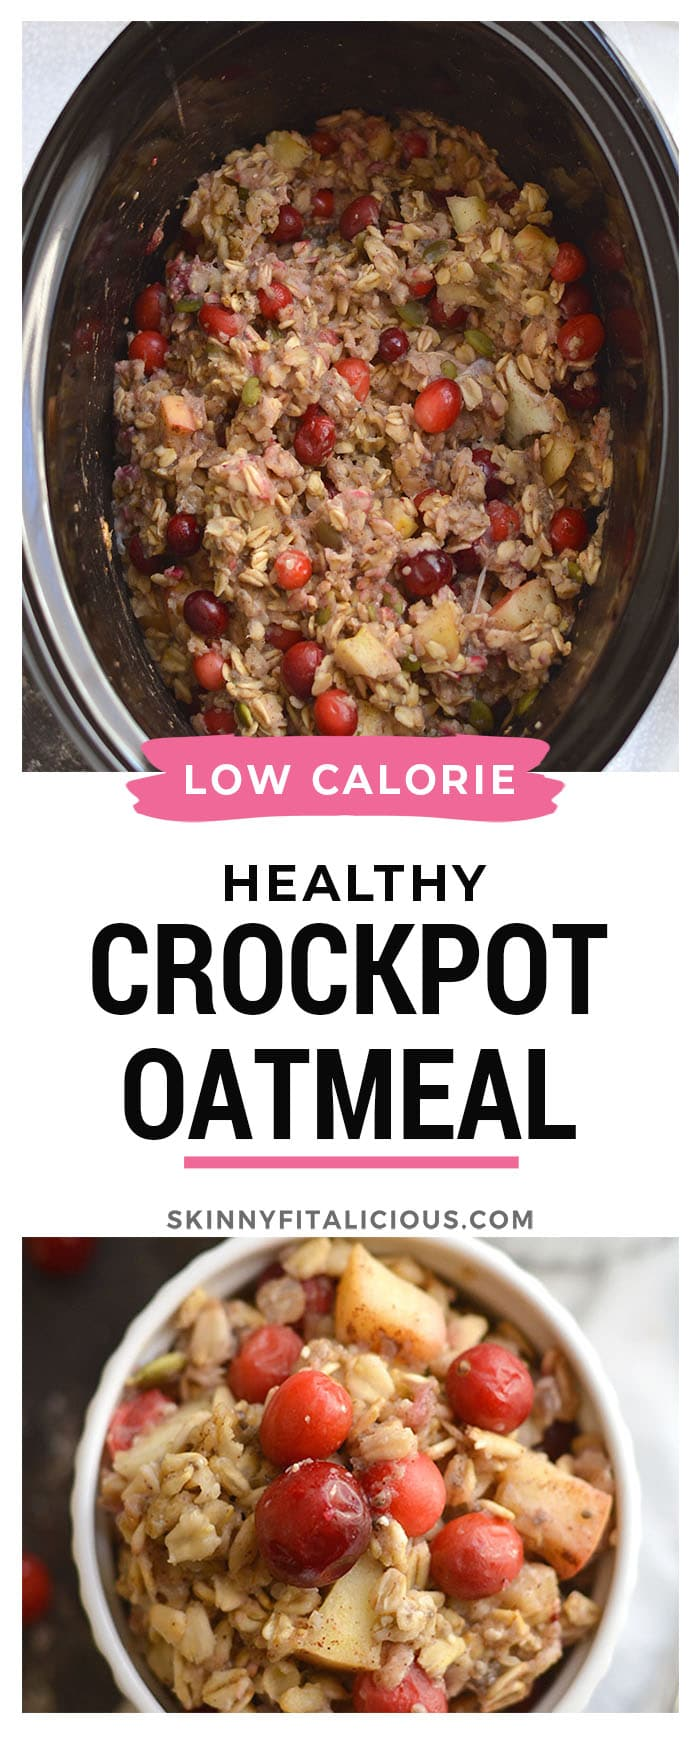 Cranberry Apple Crockpot Oatmeal is a healthier oatmeal balanced with protein and healthy fats. Just toss everything in a crockpot for an easy, make ahead breakfast! Gluten Free + Low Calorie